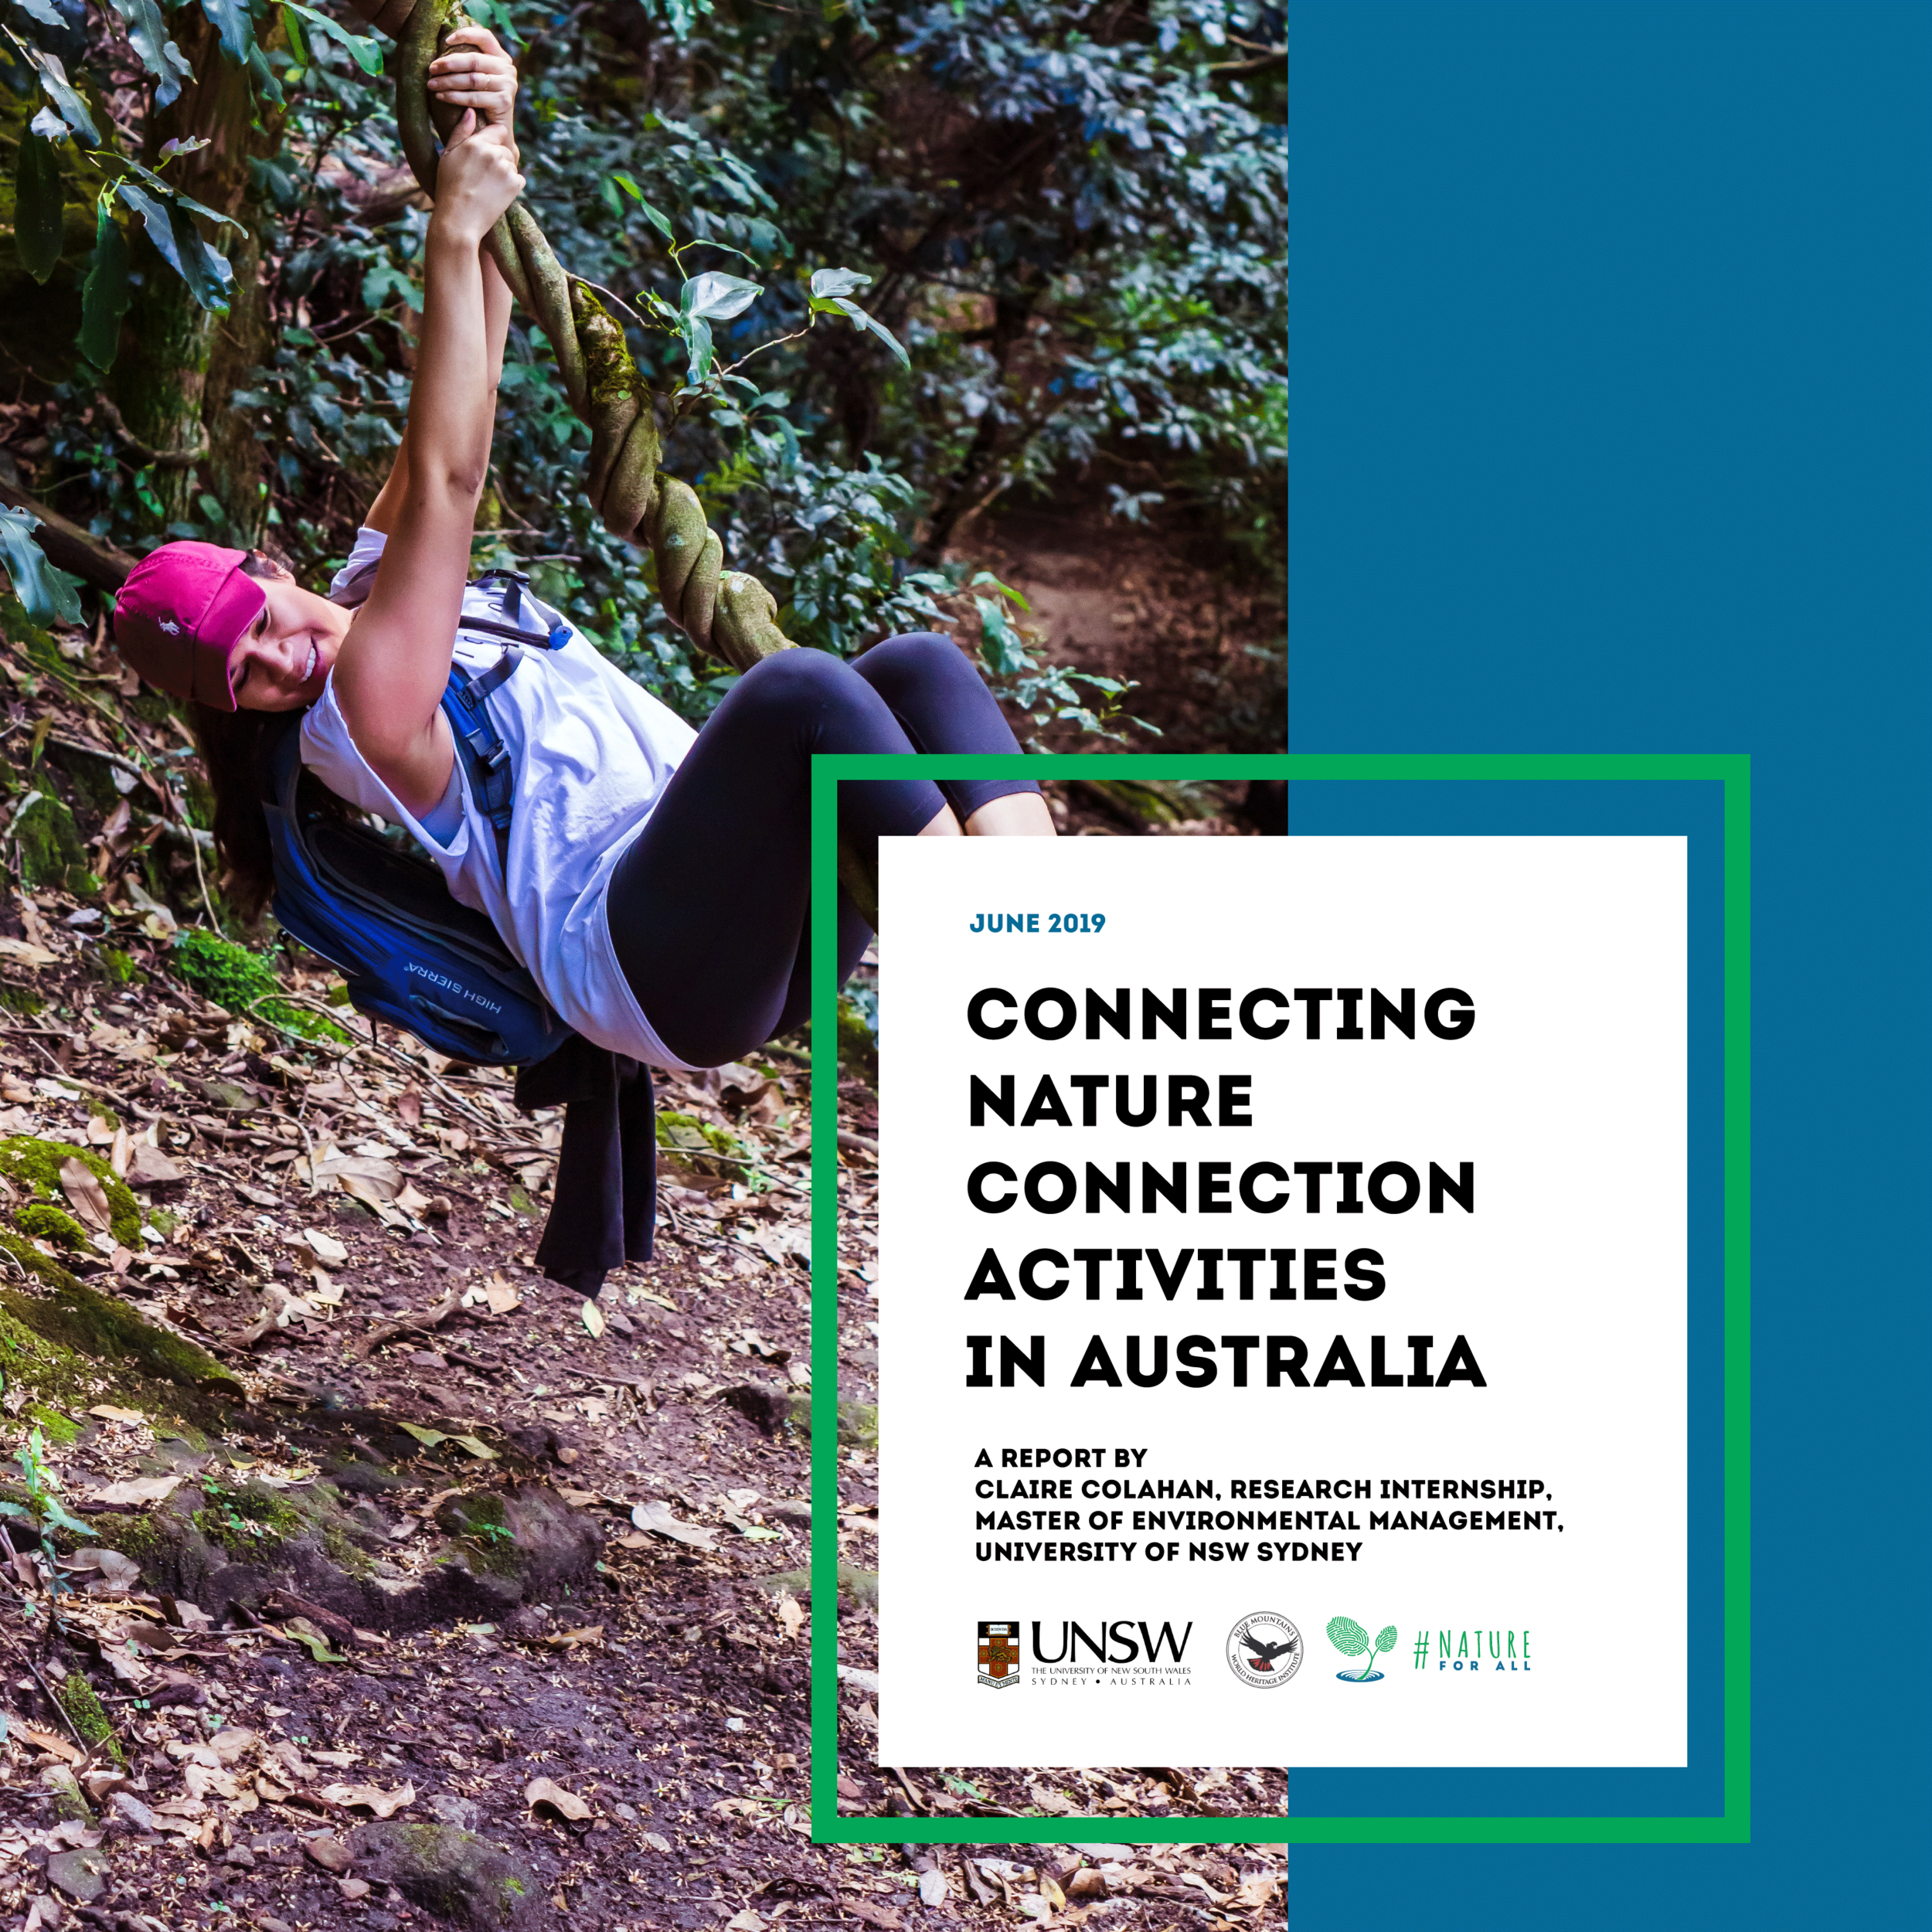 Connecting Nature Connection Activities in Australia   A report by Claire Colahan, Research Internship, Master of Environmental Management, University of NSW Sydney